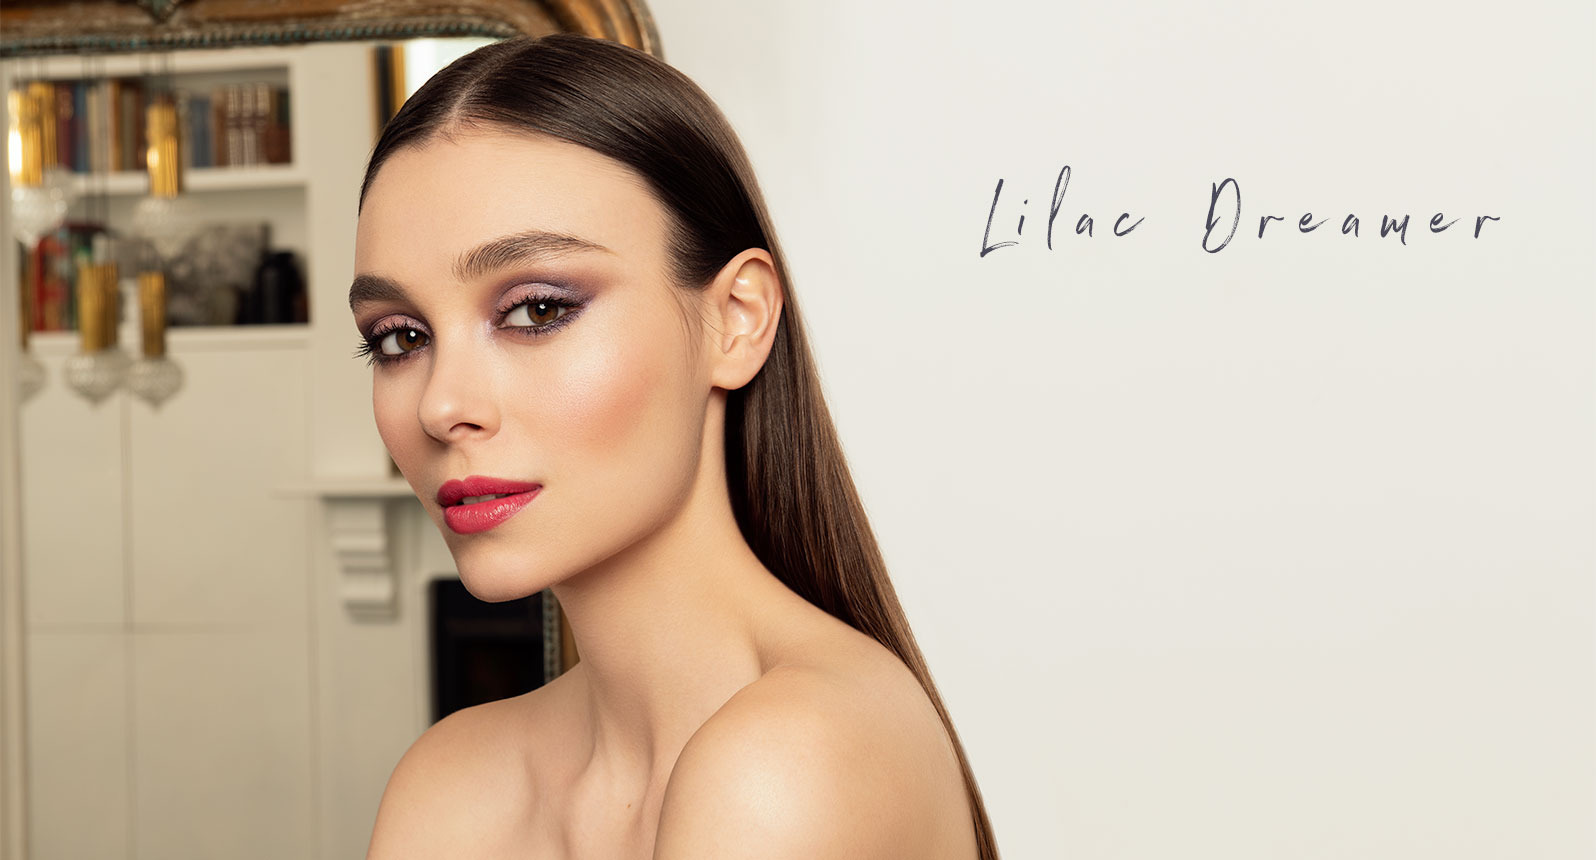 Get The Look Lily Lolo Lilac Dreamer